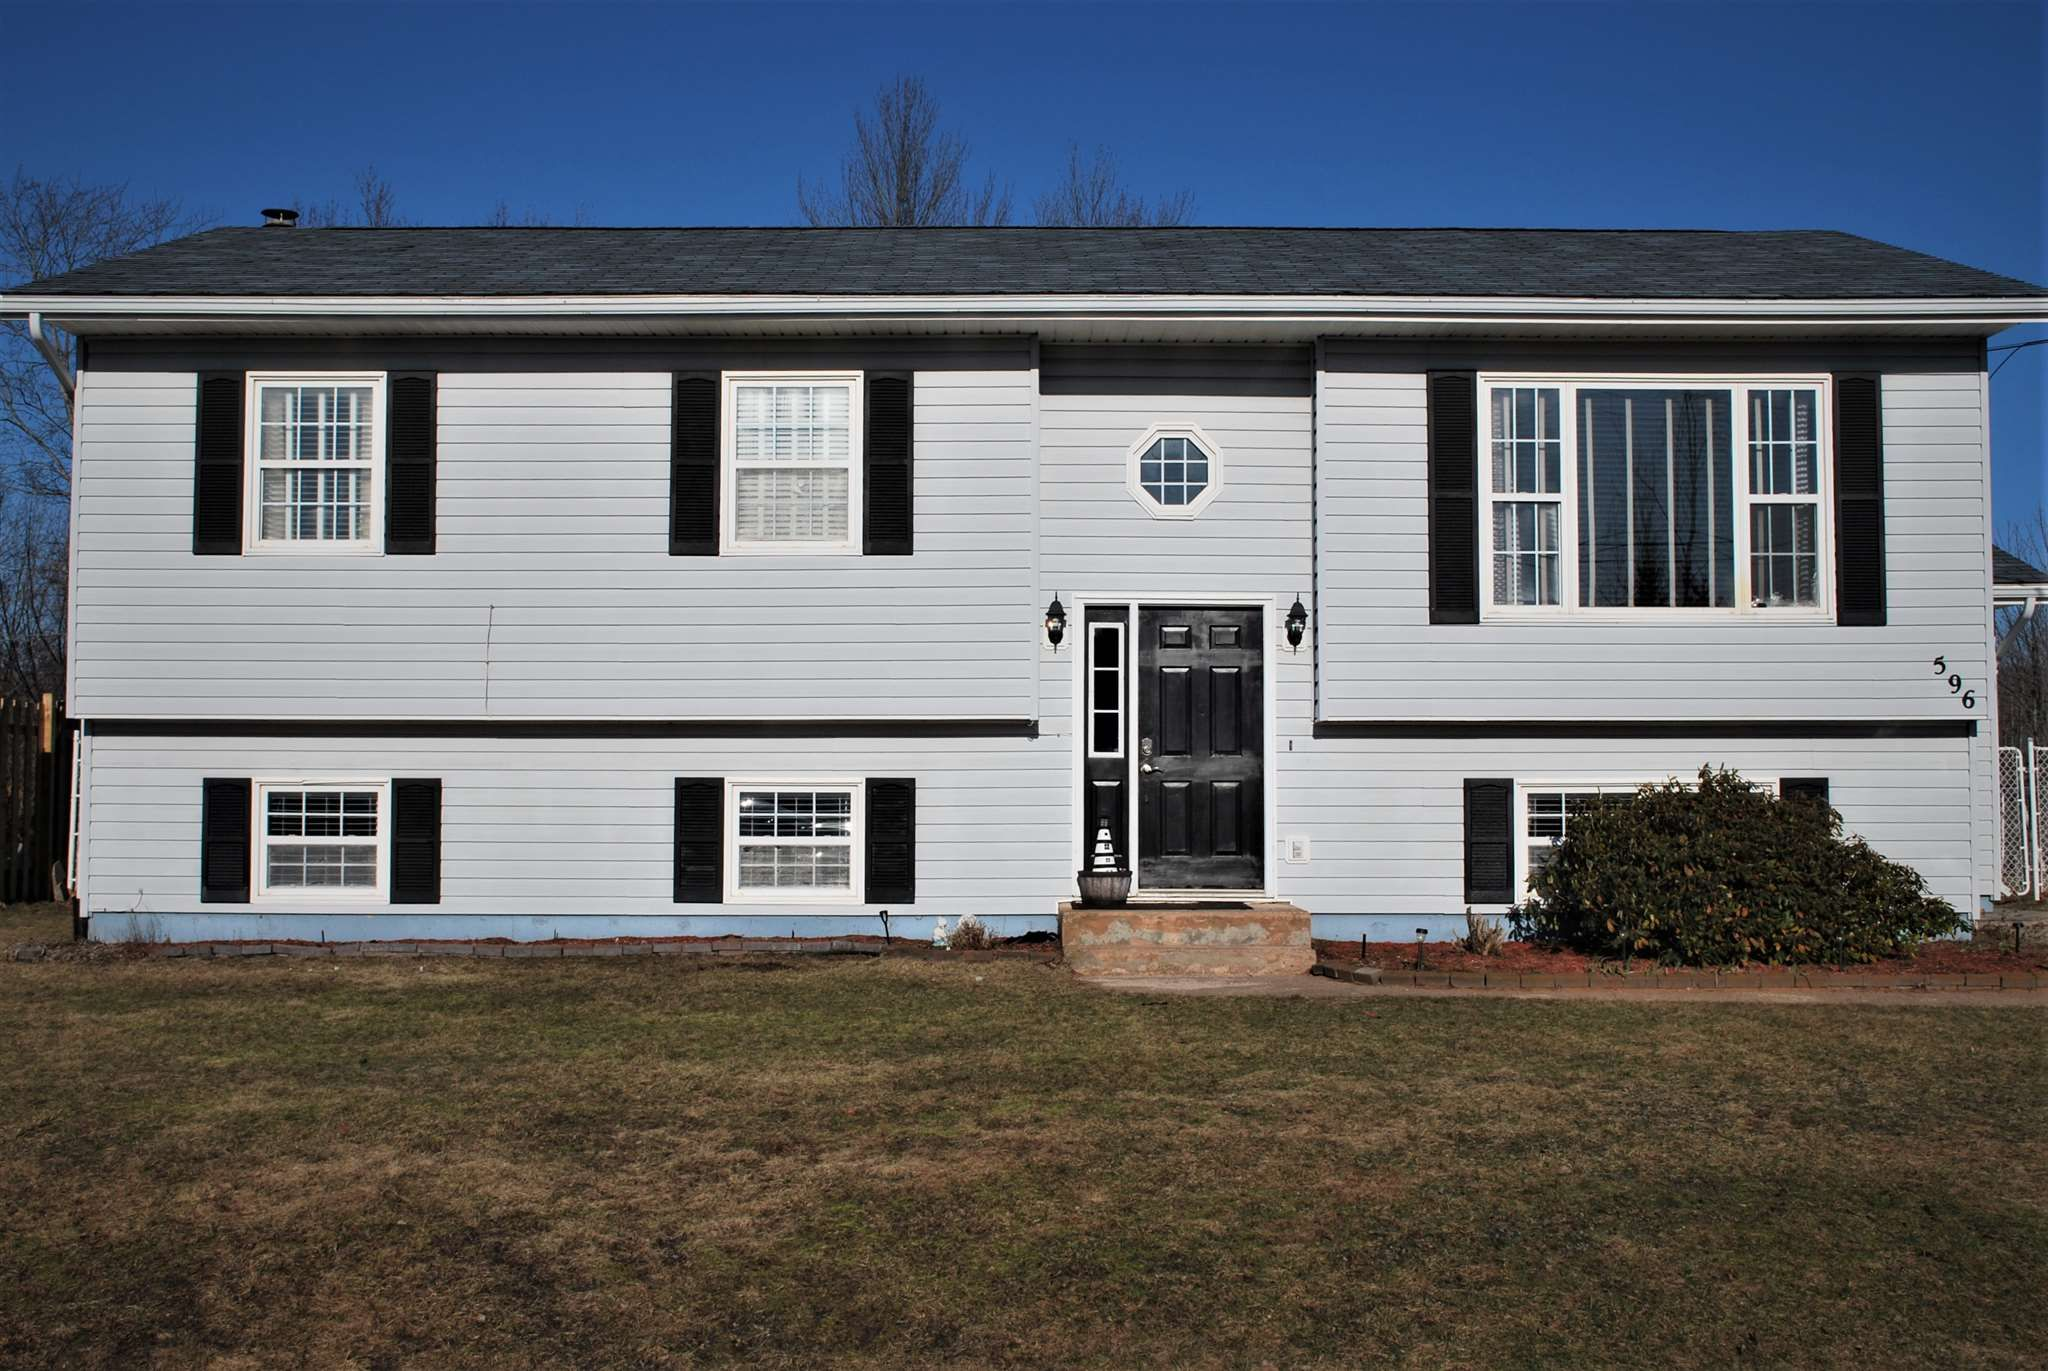 Main Photo: 596 Maxner Drive in Greenwood: 404-Kings County Residential for sale (Annapolis Valley)  : MLS®# 202105504